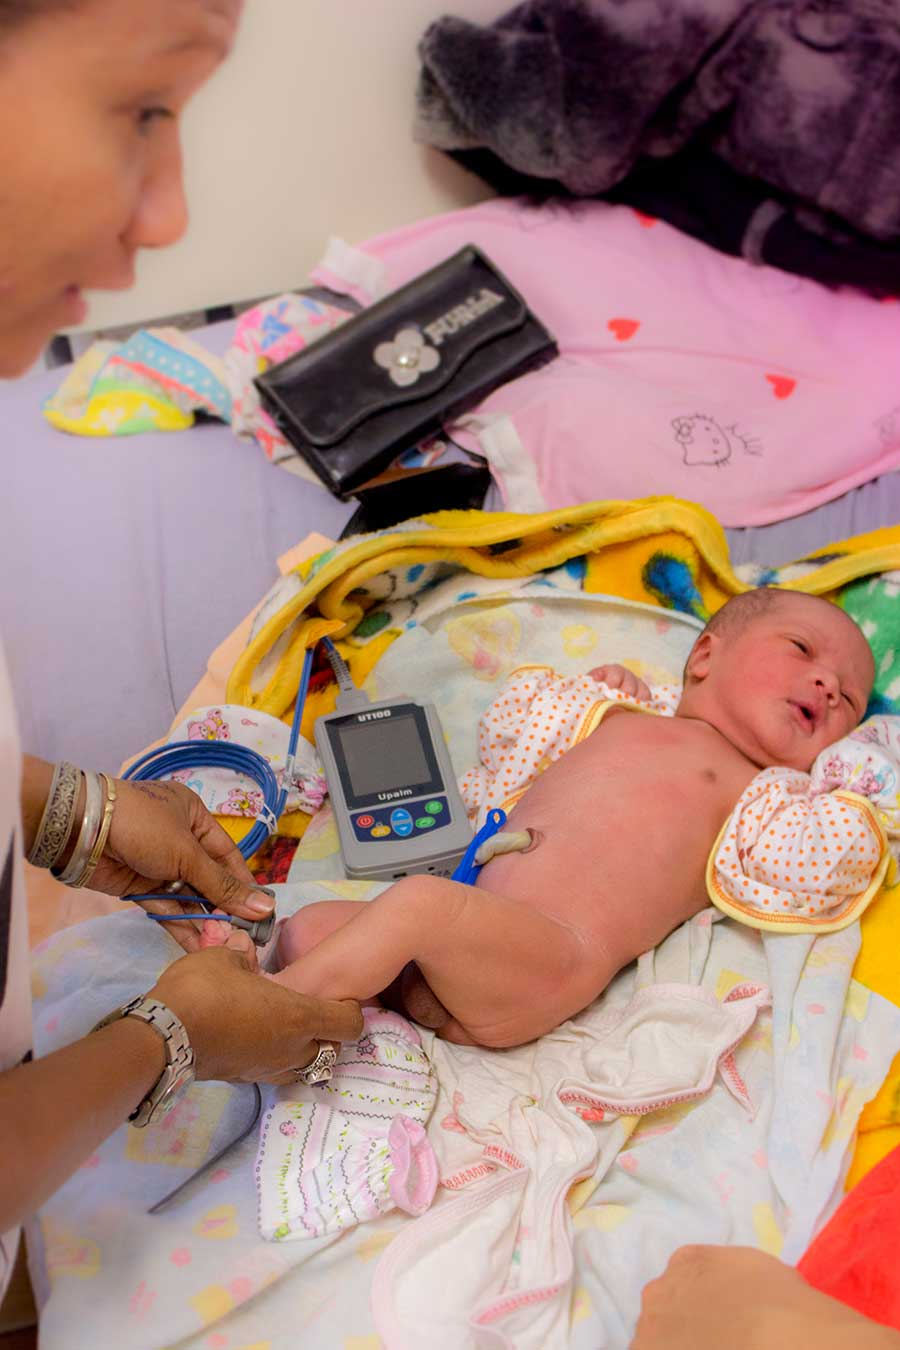 Pulse/Oxy meters for both natal and adult use as well as fetal heart beat monitors make an important difference for these hard pressed doctors.